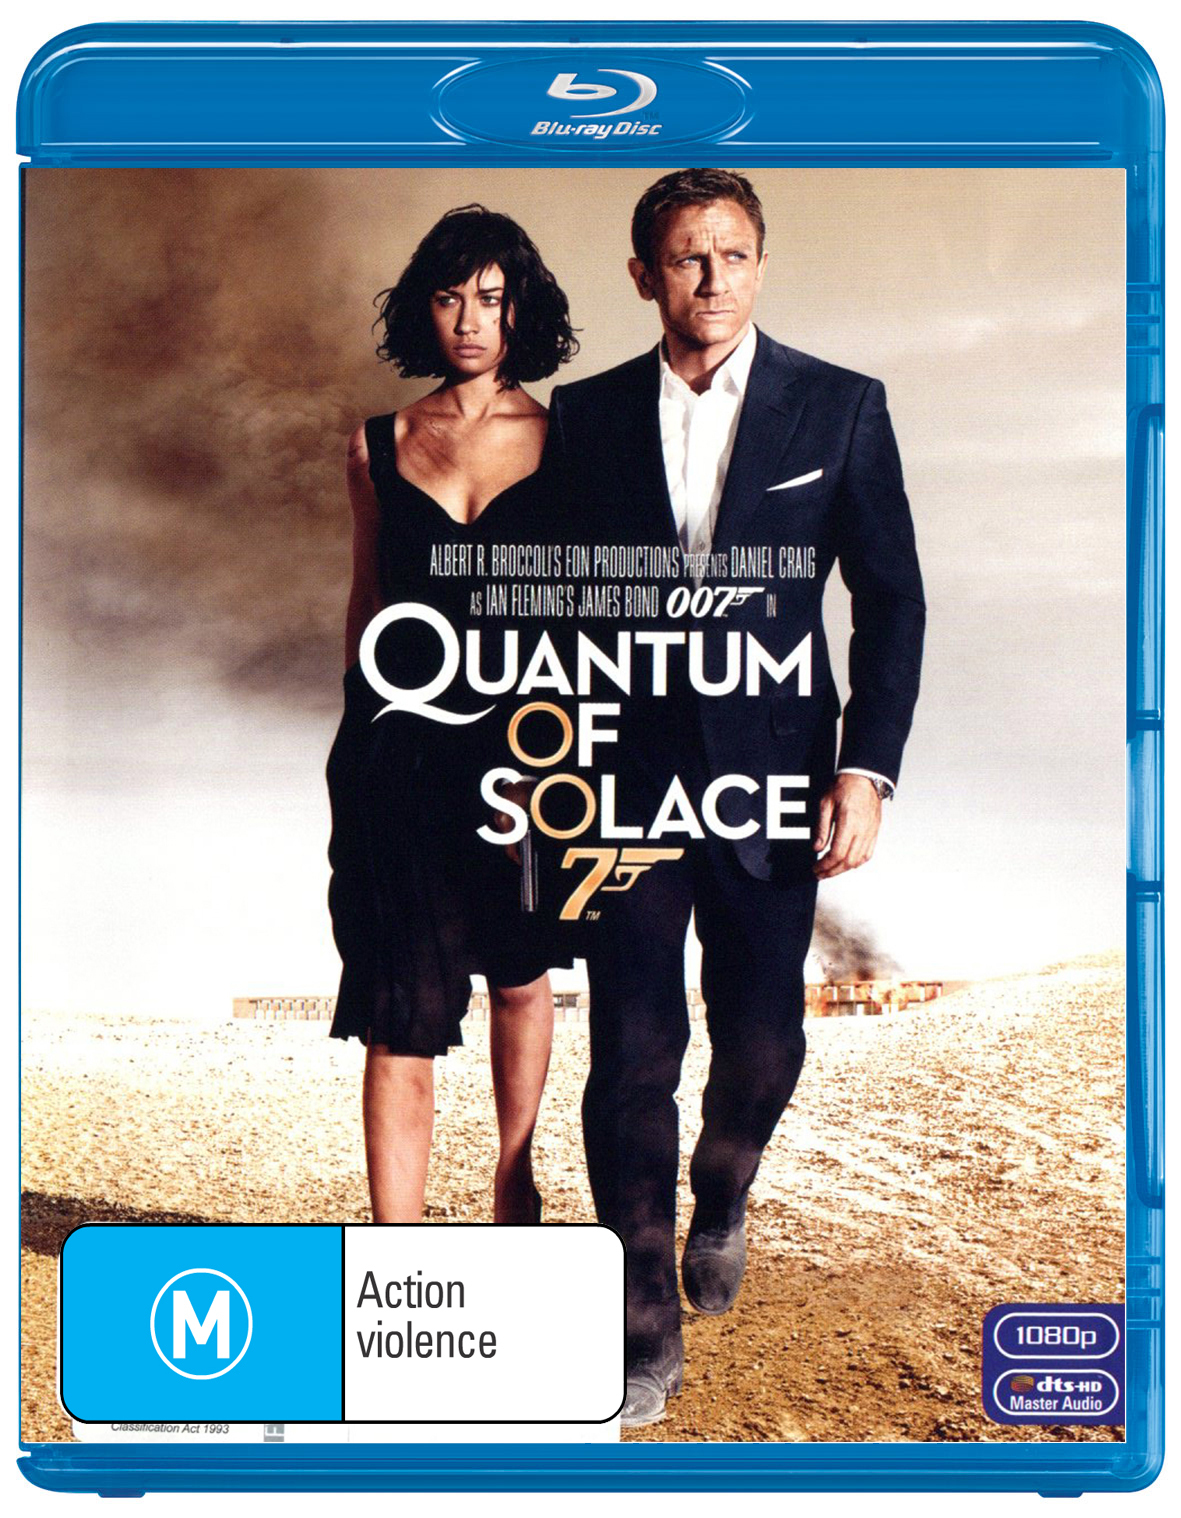 Quantum of Solace (2012 Version) on Blu-ray image